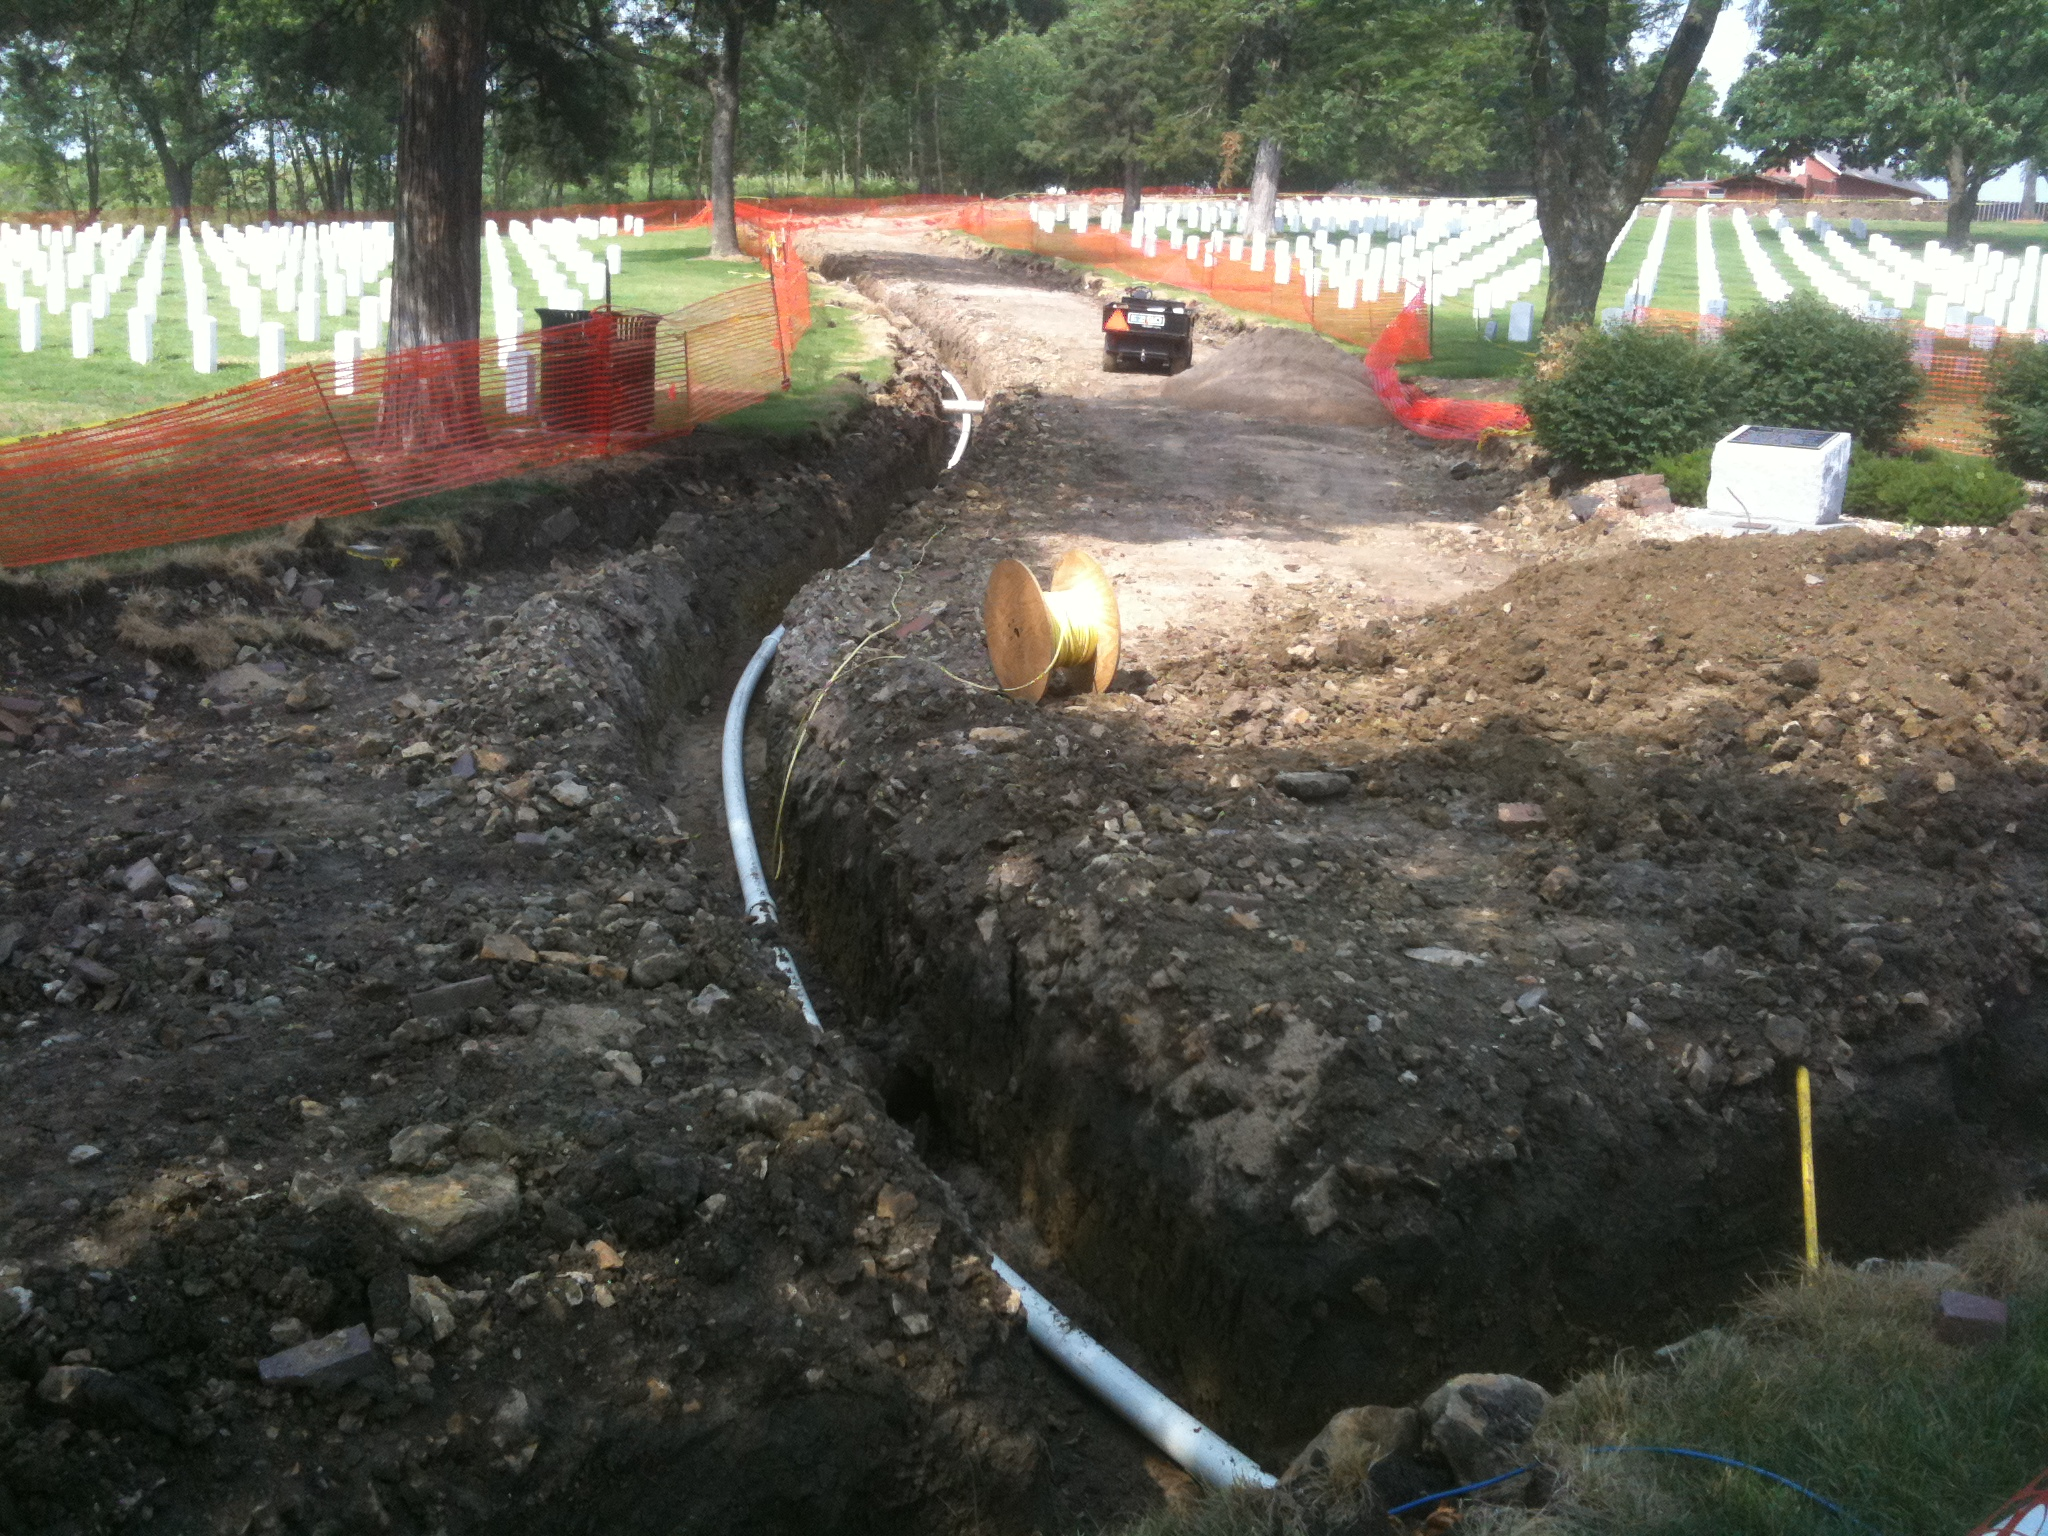 Placing new irrigation piping